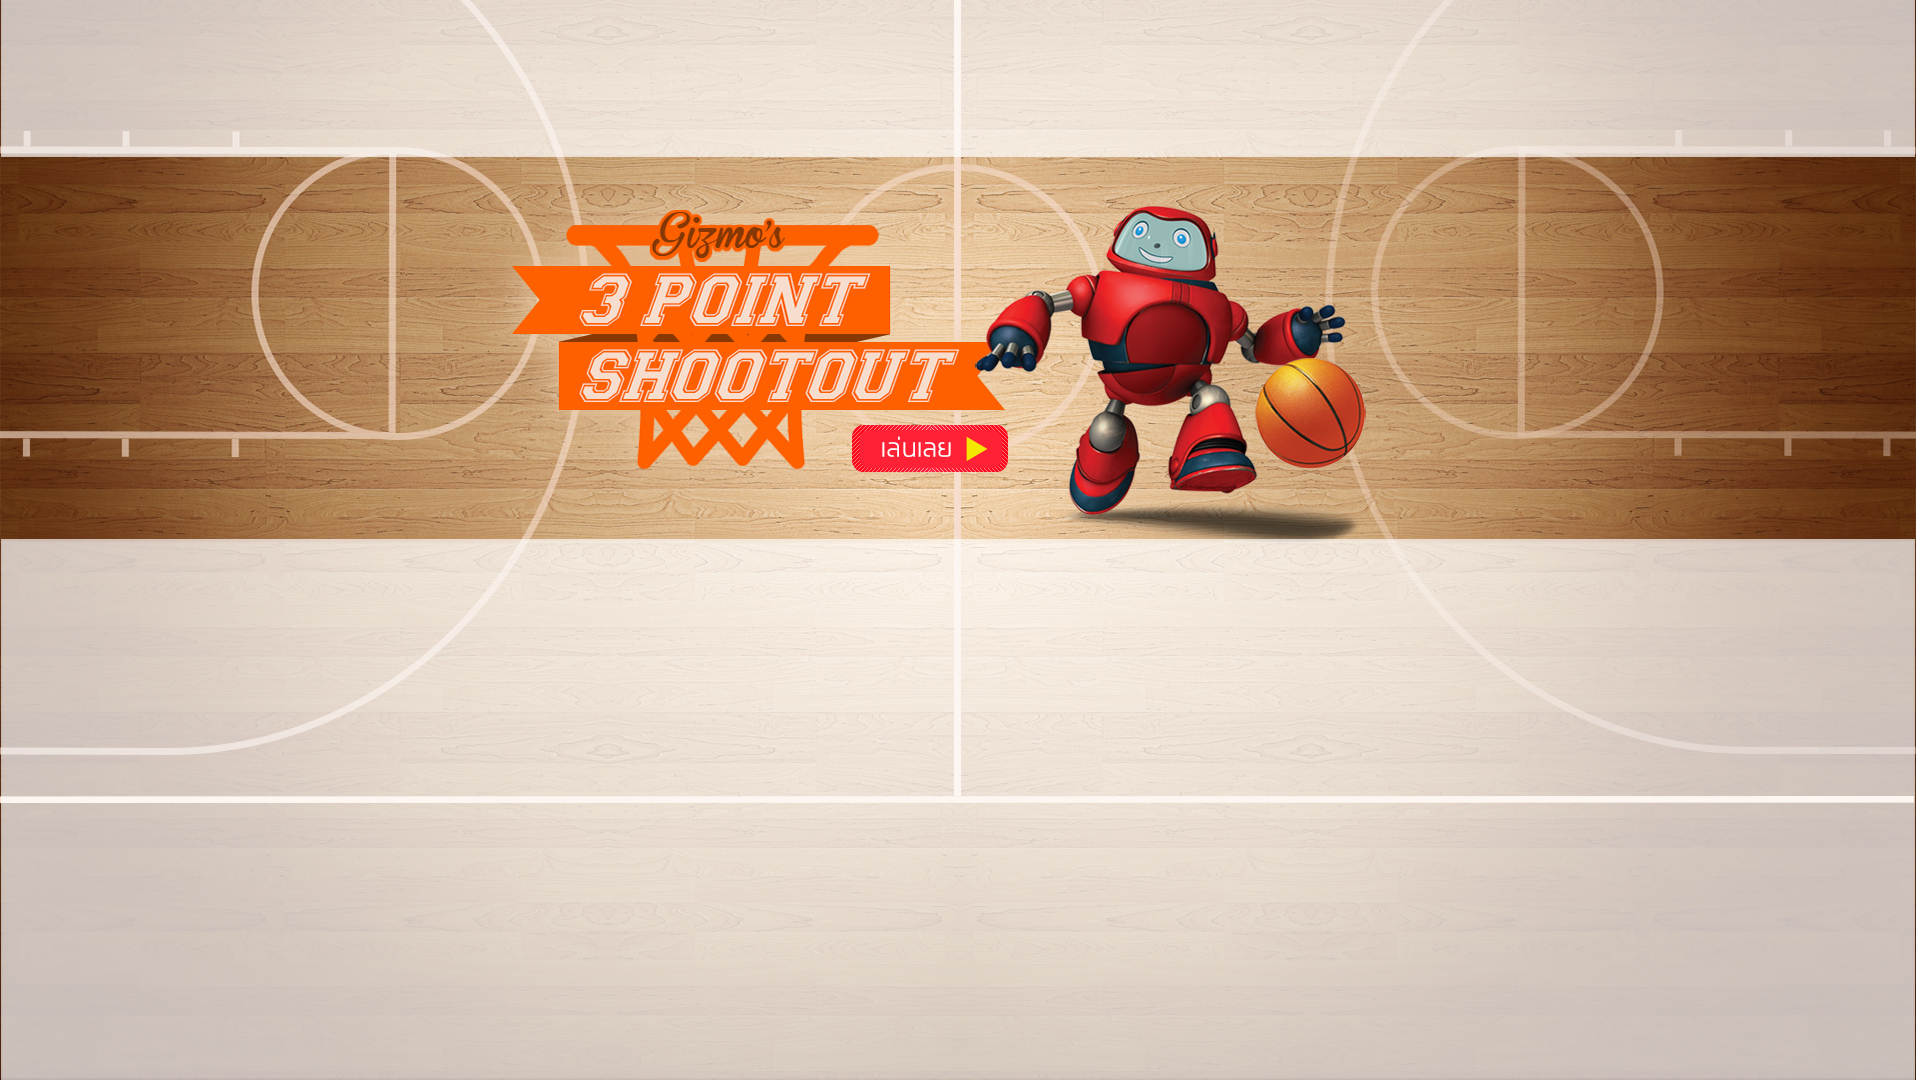 <h2>Gizmo's 3-Point Shootout</h2>